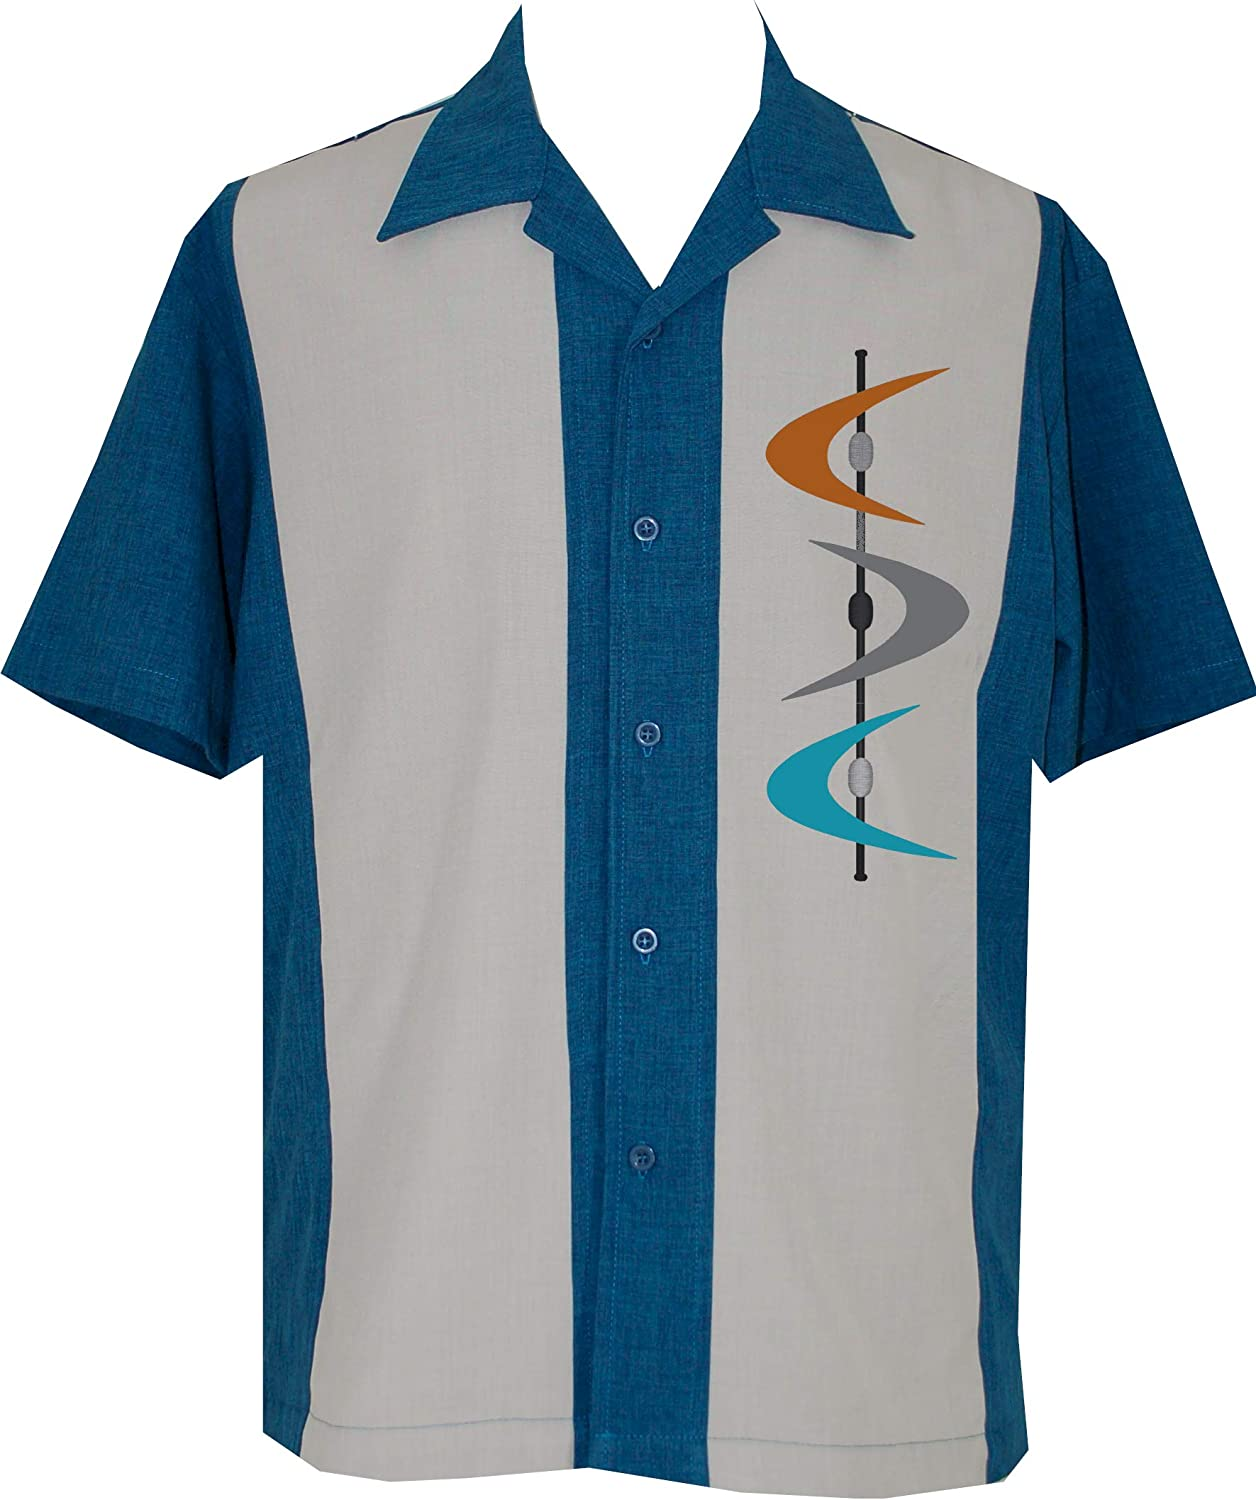 Mens Vintage Shirts – Casual, Dress, T-shirts, Polos Lucky Paradise Mens Camp Shirt Vintage Cuban Style Bowling Shirt Mid-Century ~ Guayabera Dress Shirt Style $65.95 AT vintagedancer.com